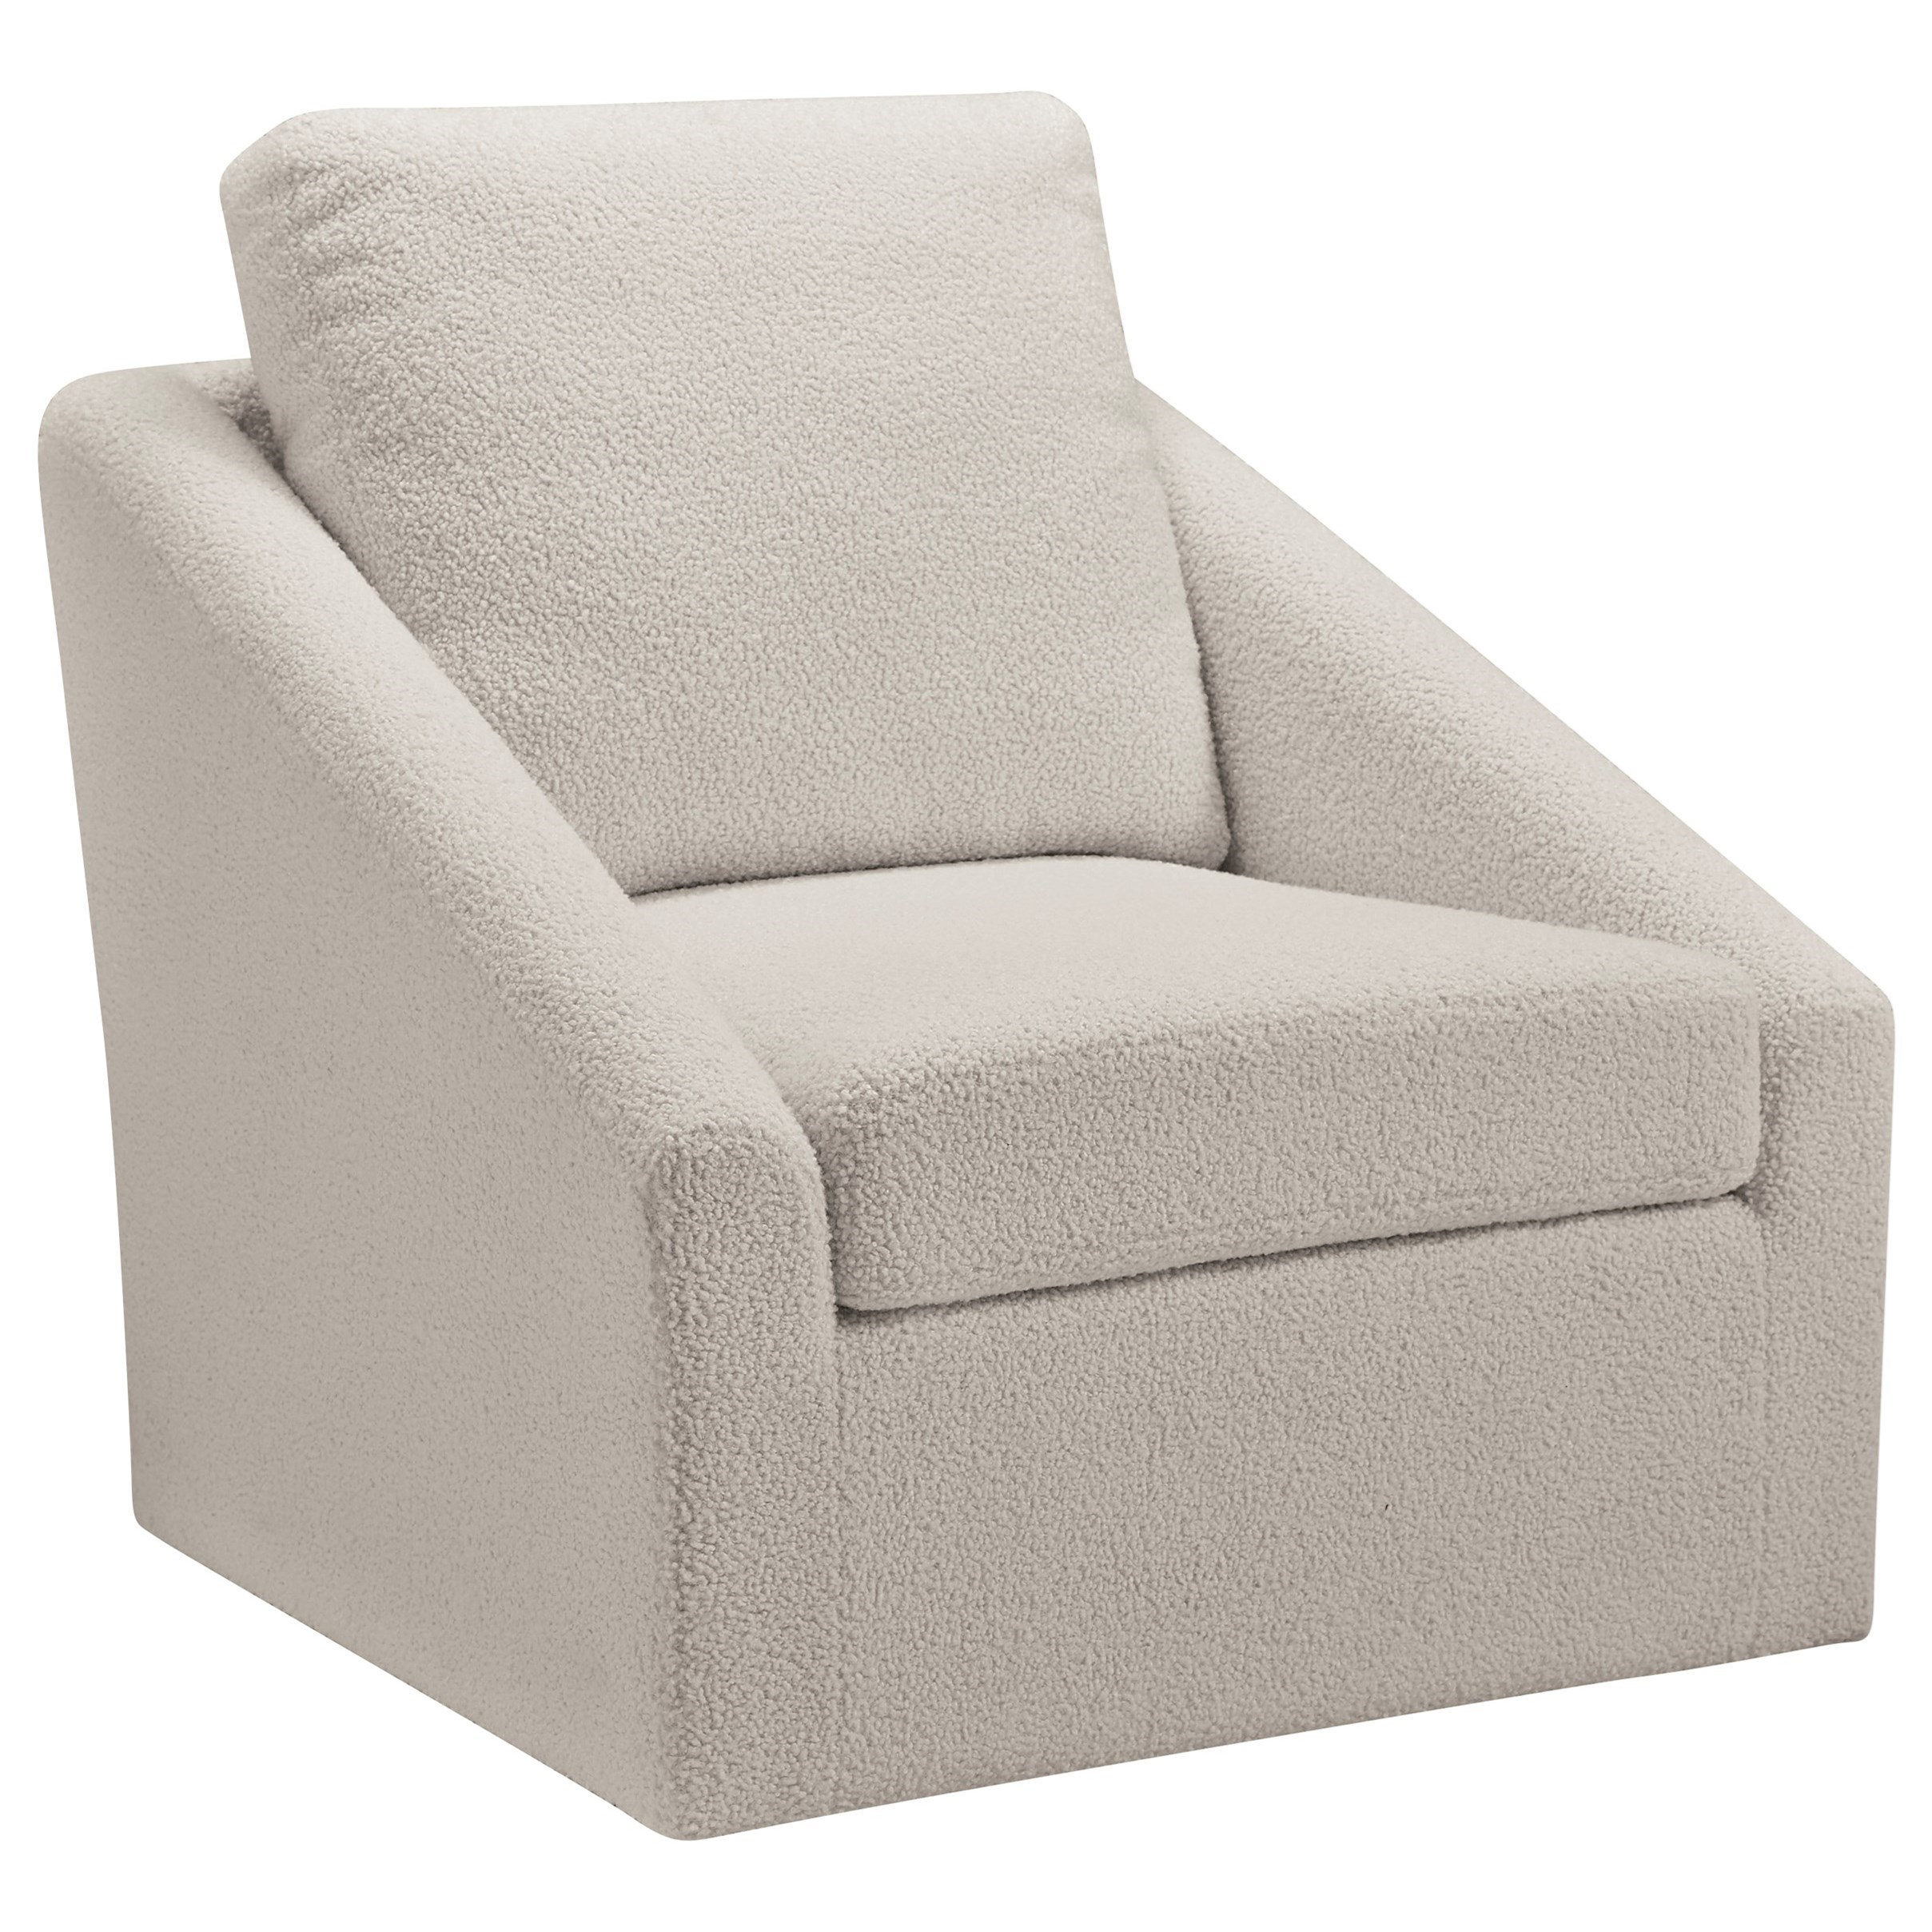 Picture of: Signature Design By Ashley Wysler Swivel Accent Chair In Cream Sherpa Fabric Royal Furniture Upholstered Chairs